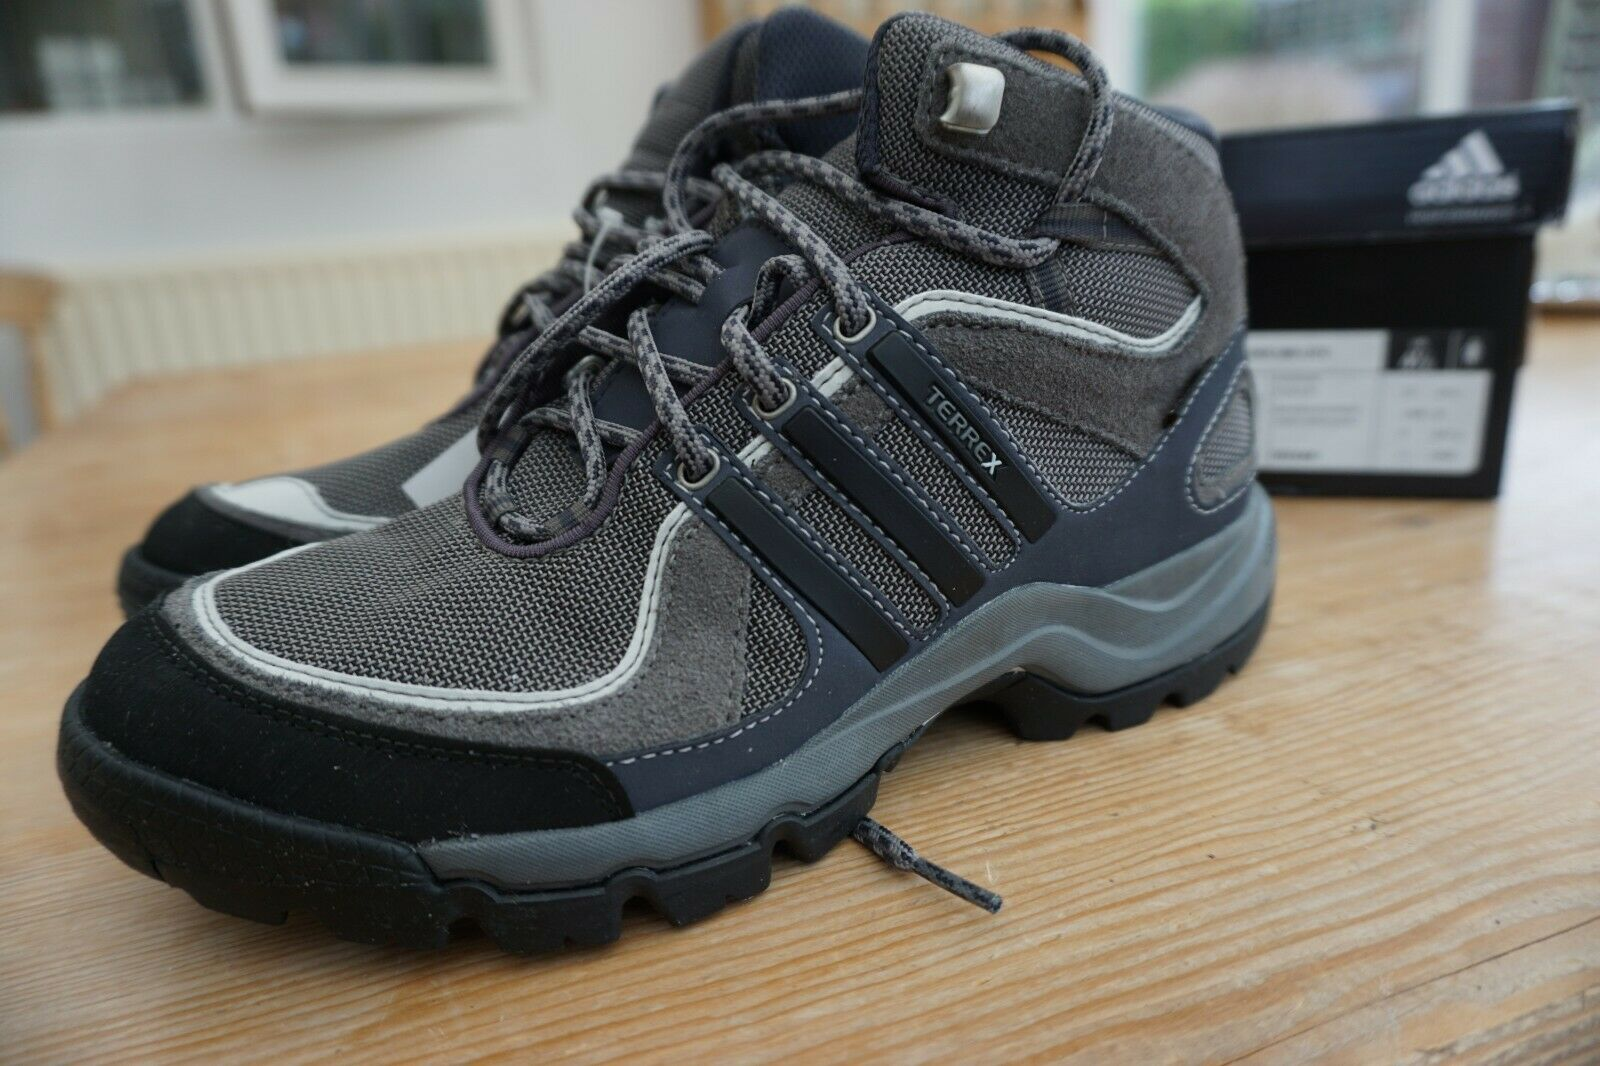 Womens Adidas Swift Hike Mid GTX Hiking Boots